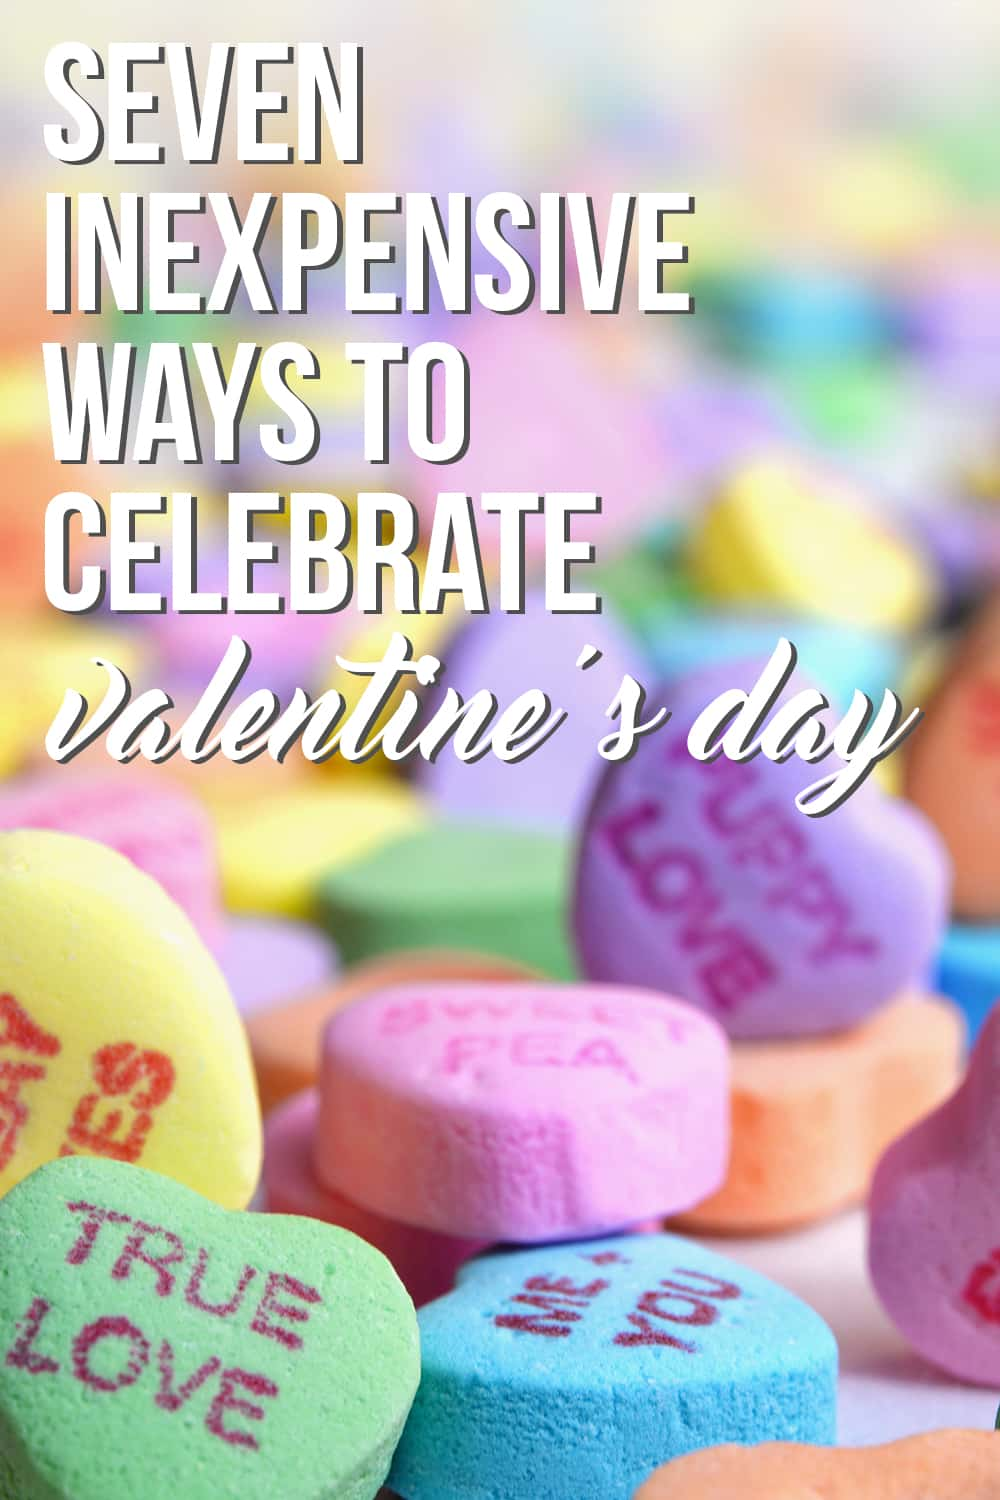 Seven Inexpensive Ways to Celebrate Valentine's Day